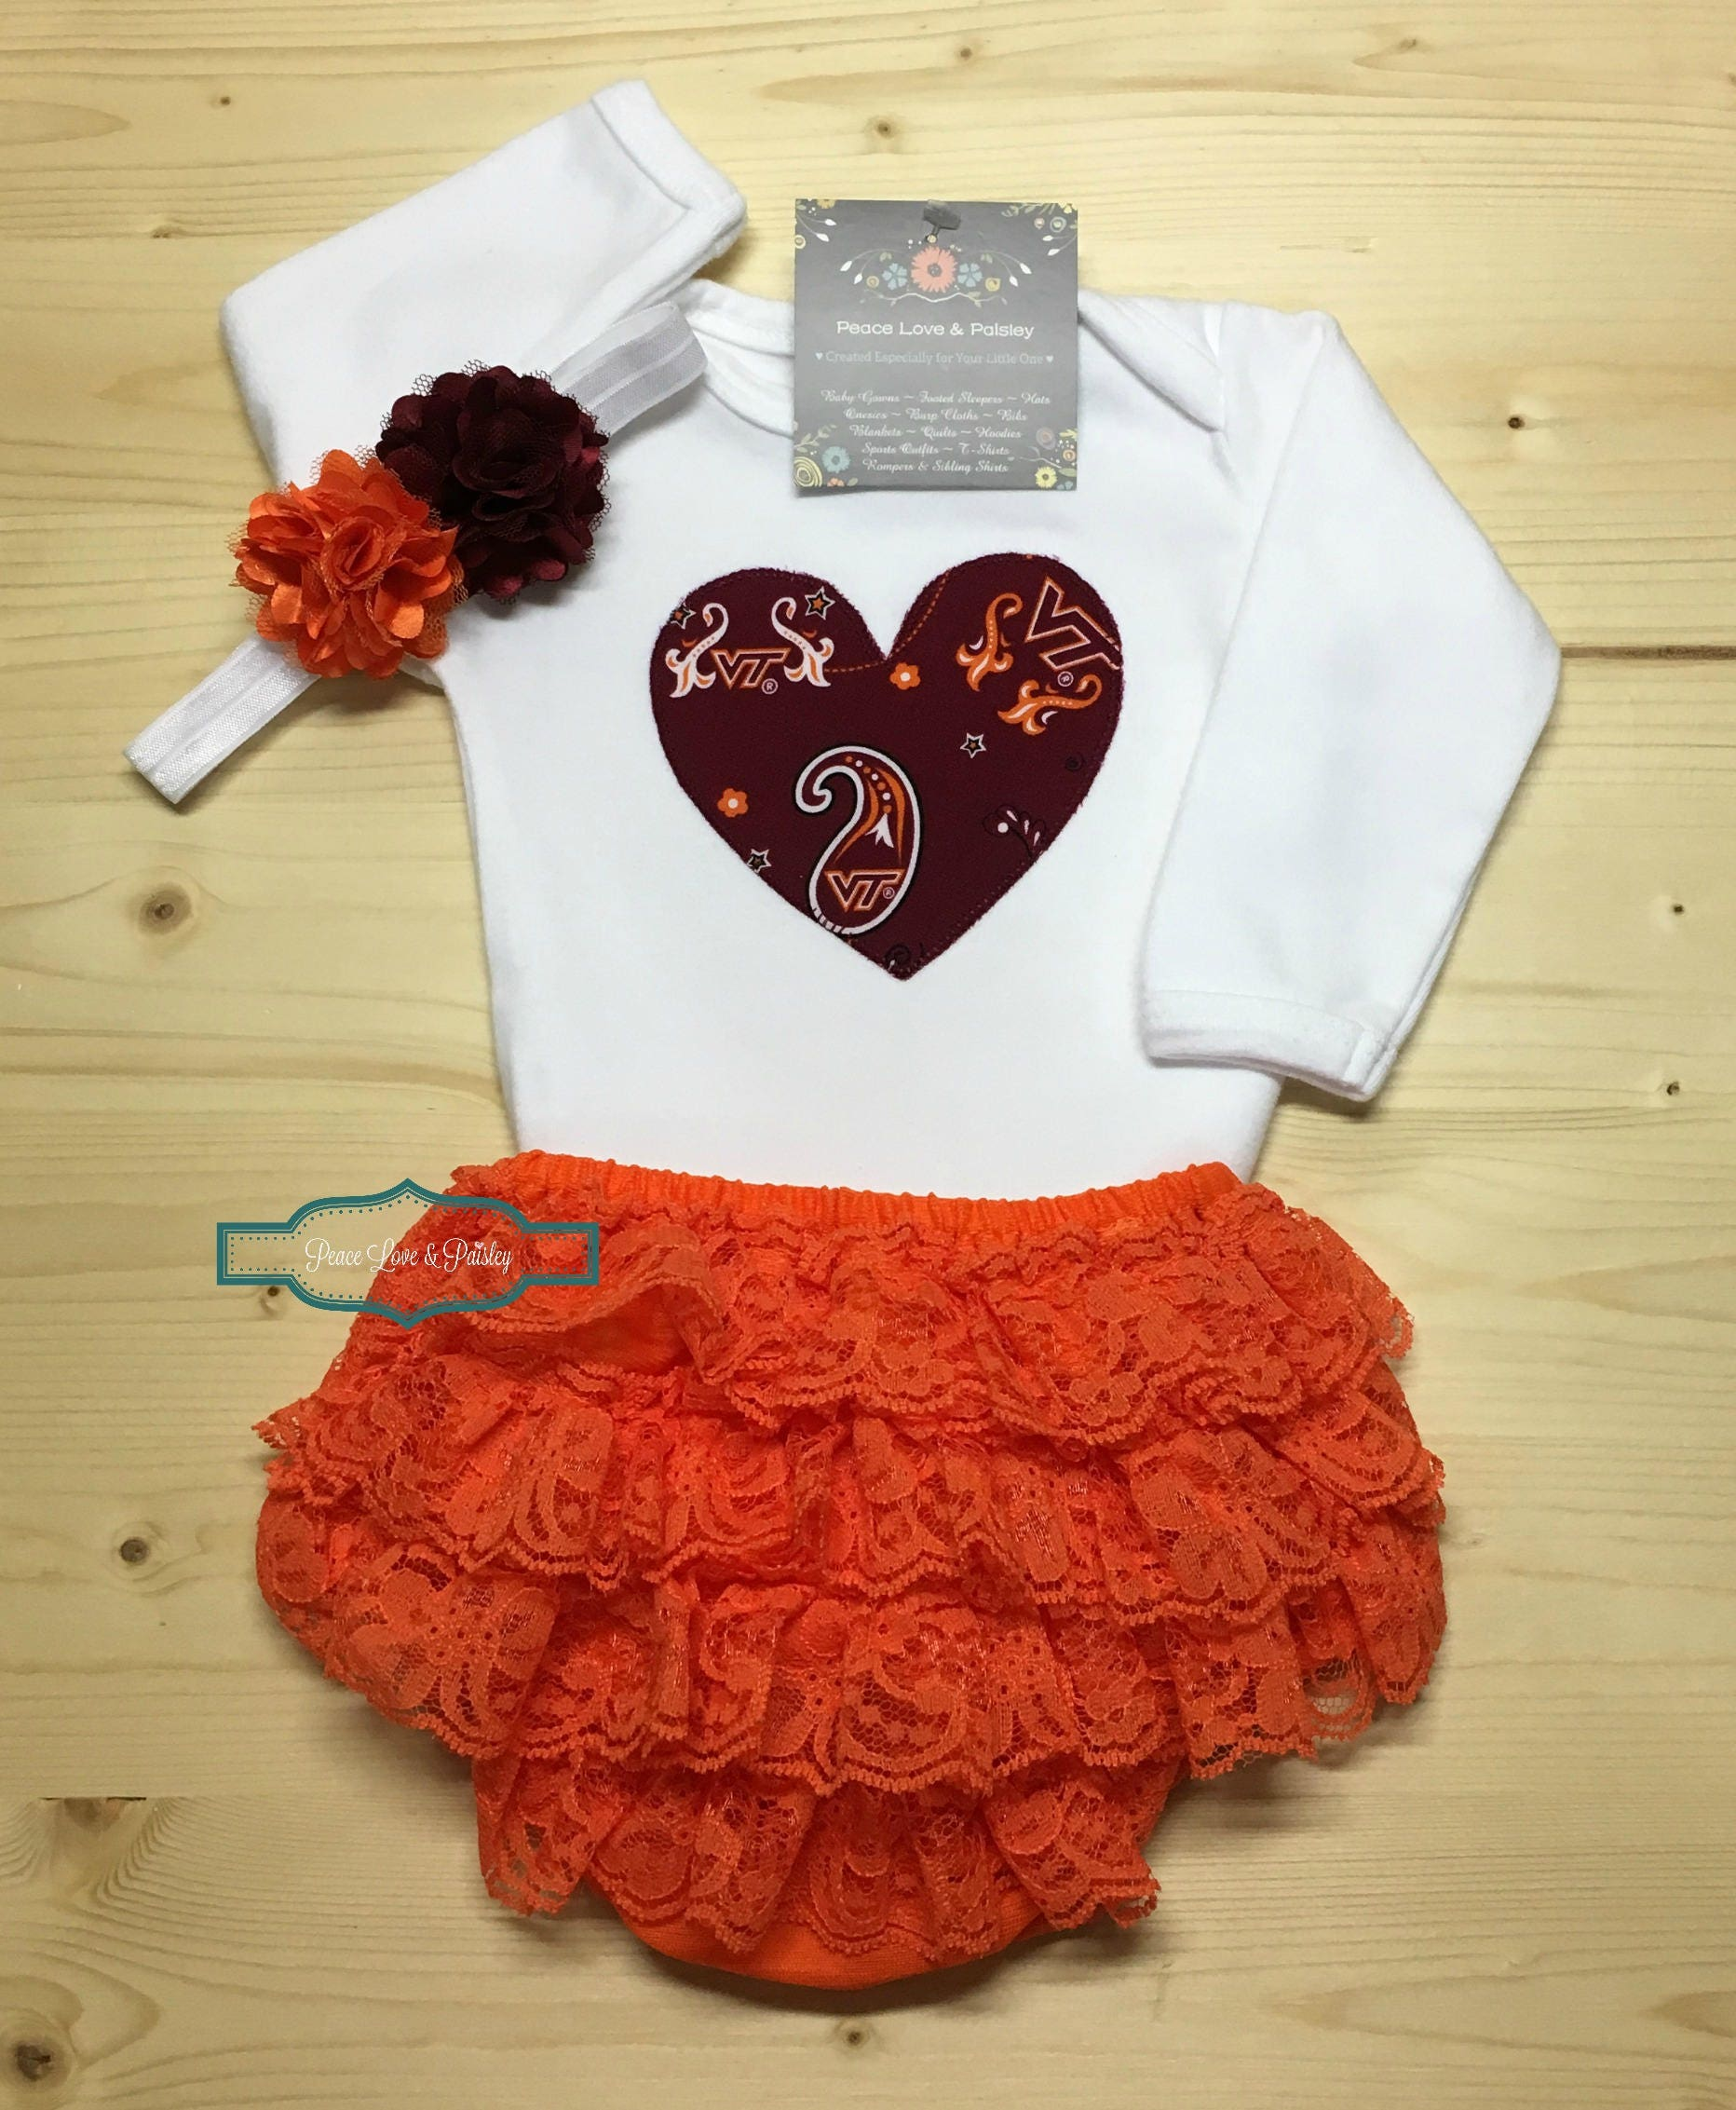 VT Bodysuit Lace Ruffle Diaper Cover and Headband Set Made